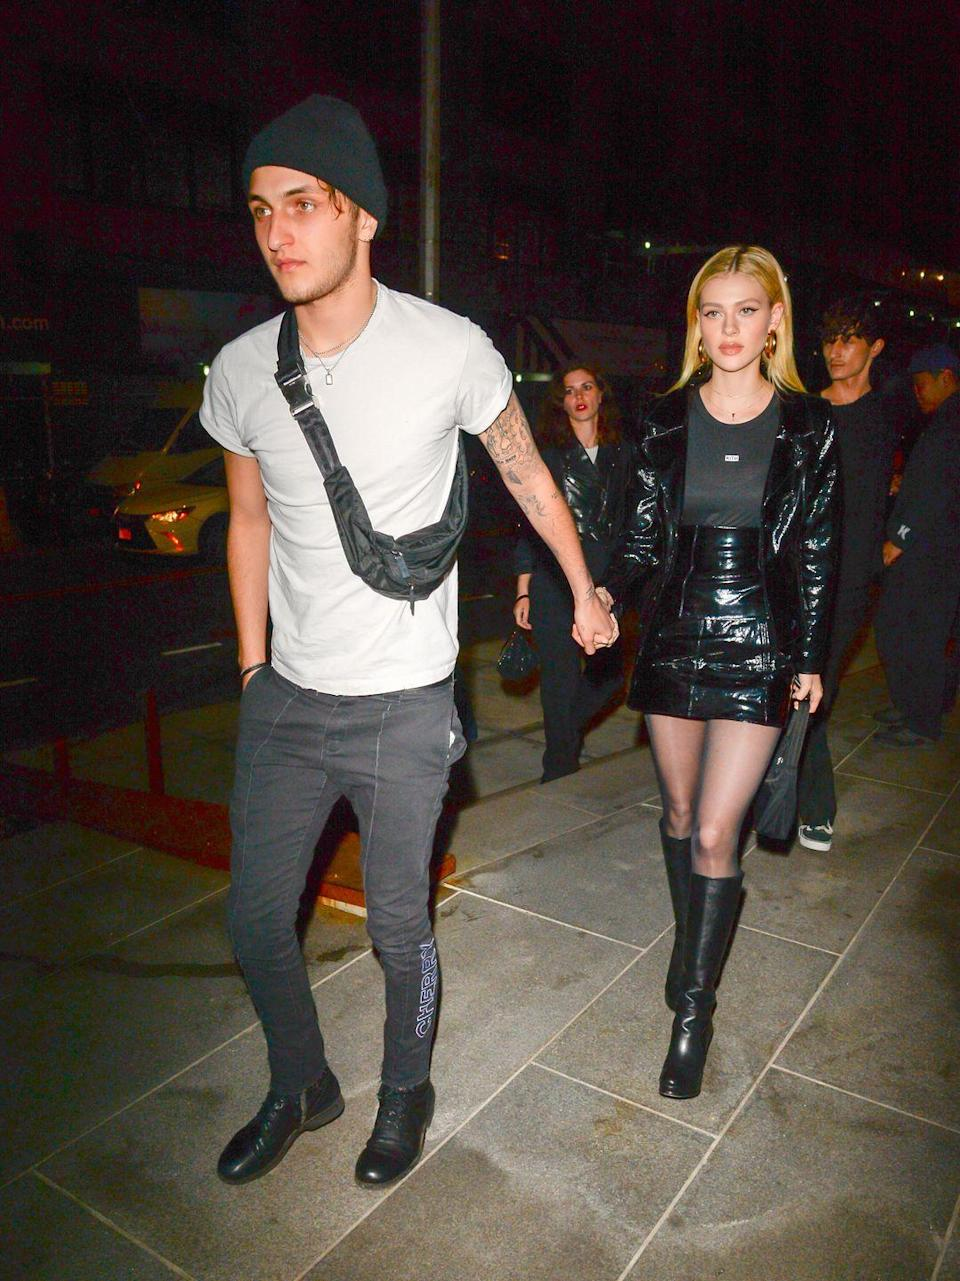 <p>To celebrate then-boyfriend Anwar Hadid's sister's birthday party in NYC, Peltz wore a pair of black knee-high leather shoes, a black high-waisted skirt, a black leather jacket and grey T-shirt. </p>